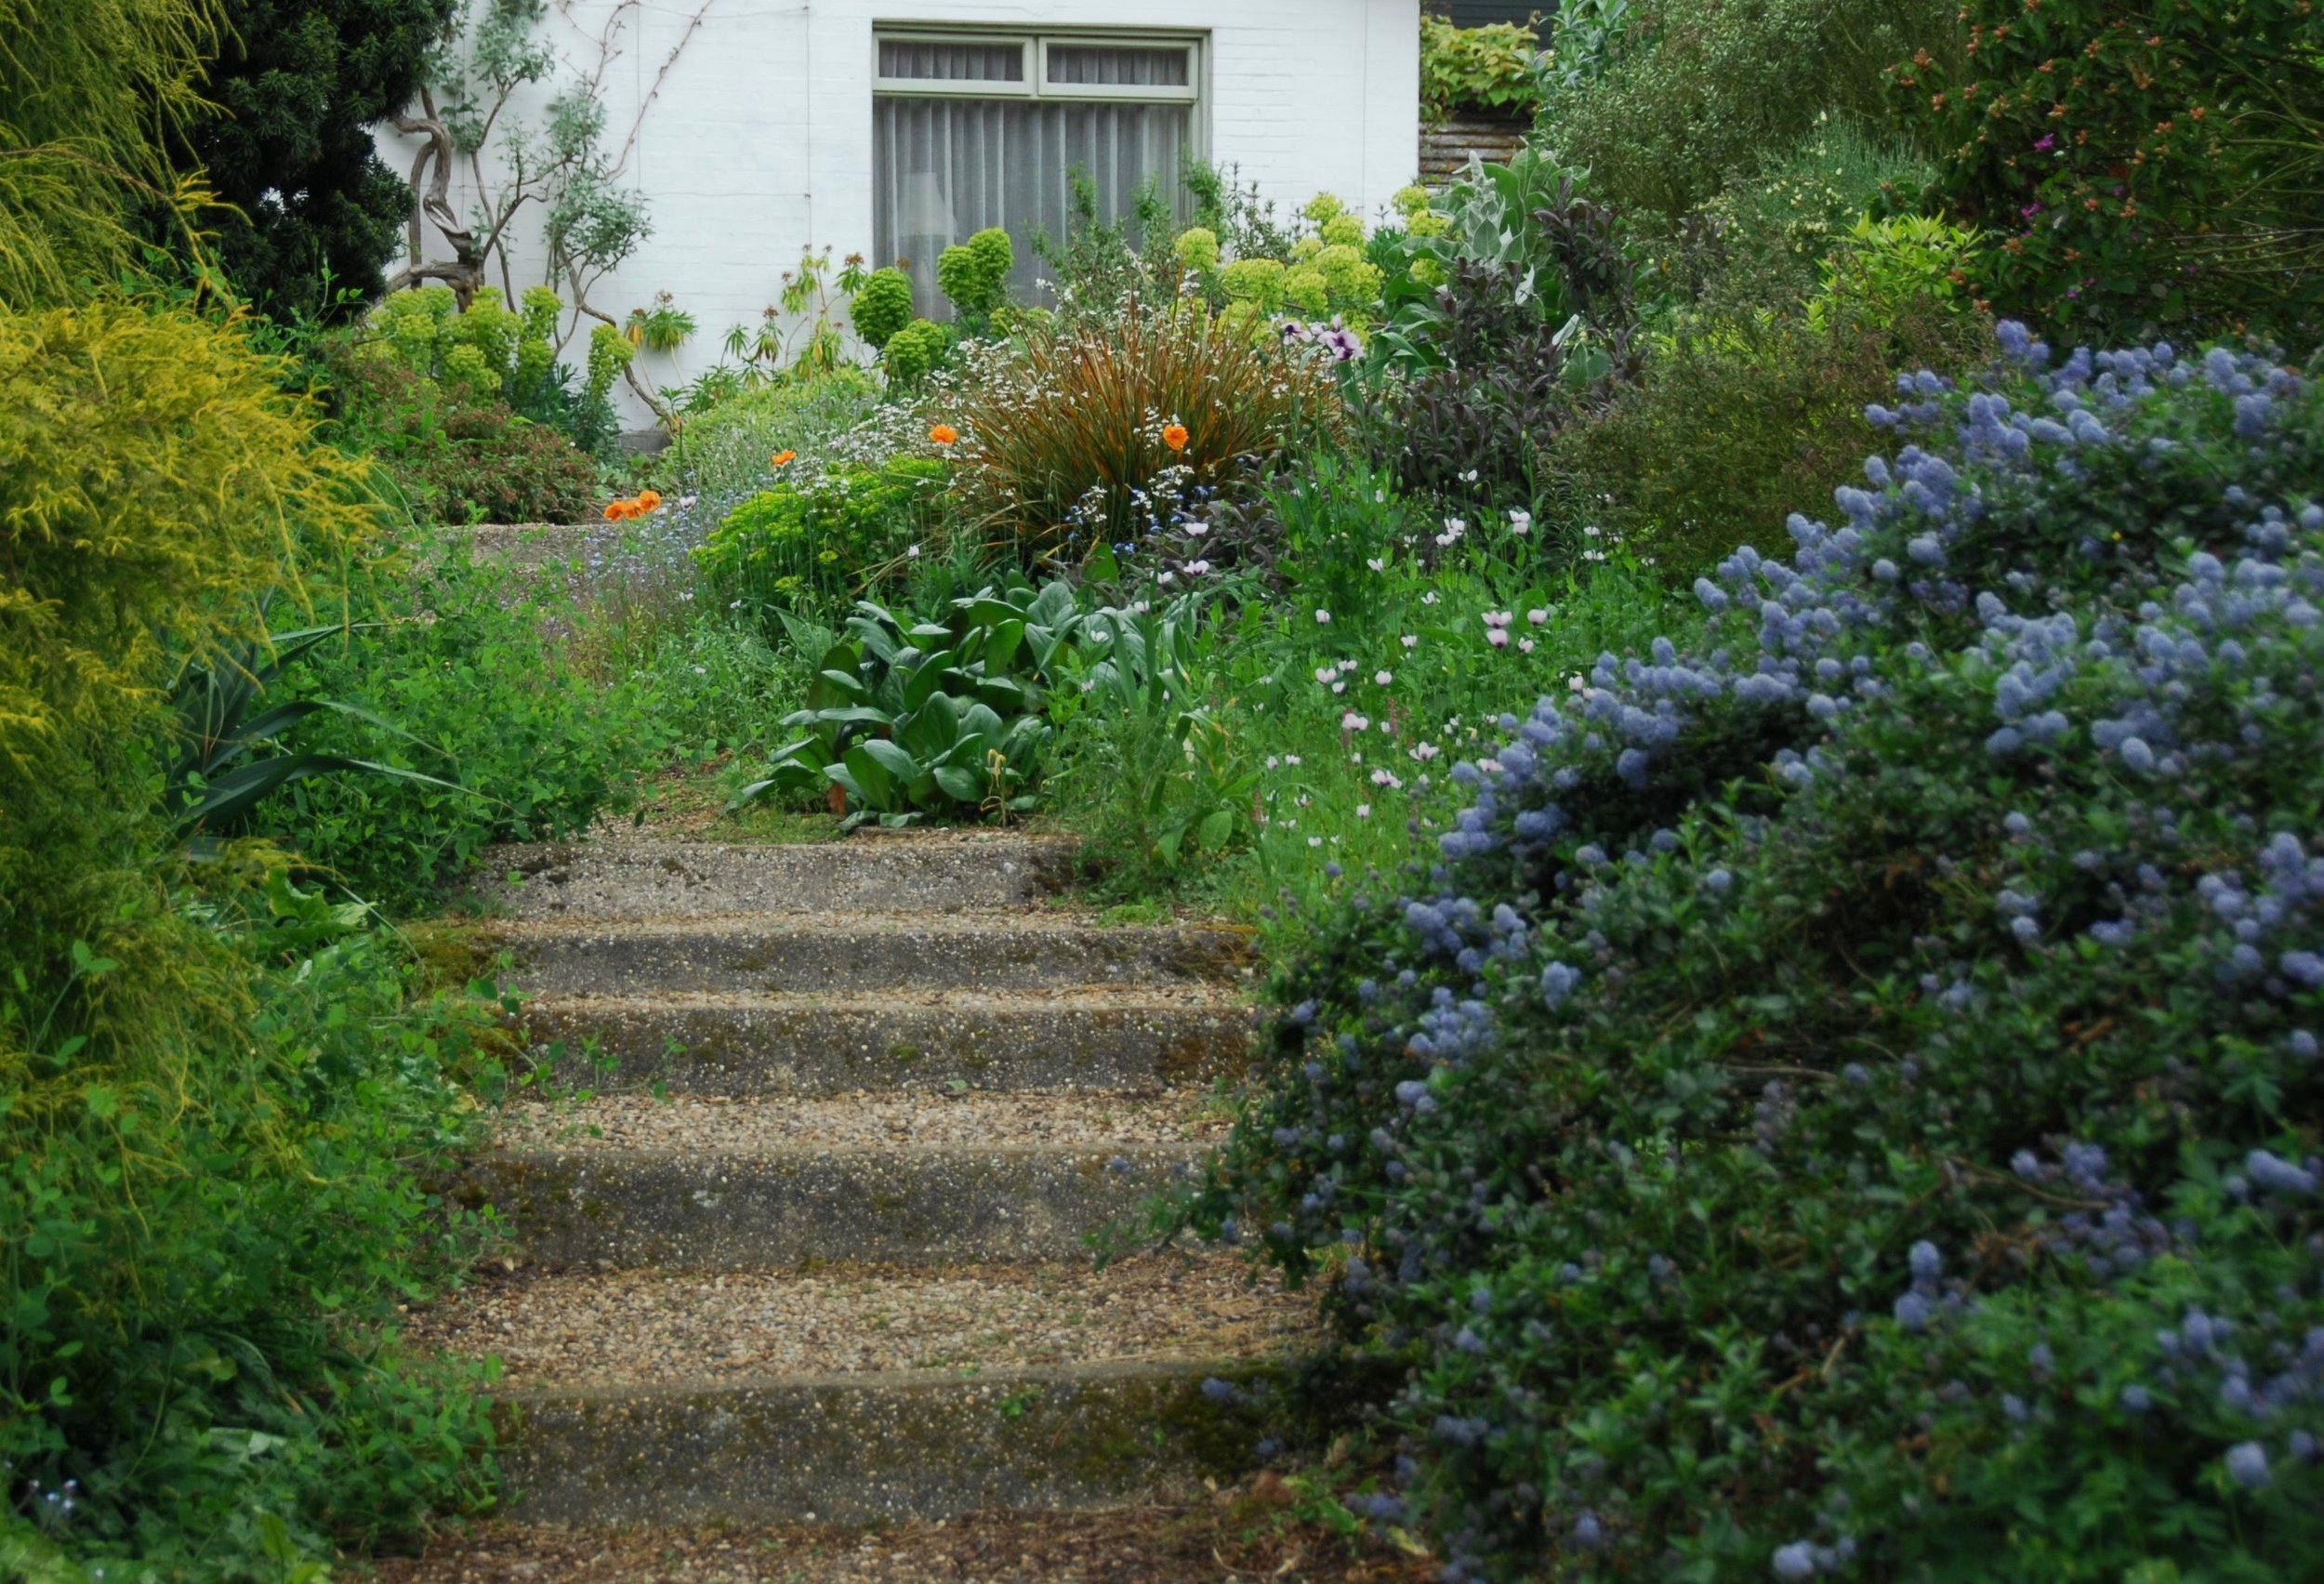 """BETH CHATTO'S GARDEN   """"Beth Chatto passed away in mid 2018, but her legacy is stronger than ever. Beth was a pioneer of unapologetically beautiful ecological planting, and an almost lone voice, prophesying the future of garden design. Her garden was her laboratory and playground."""""""